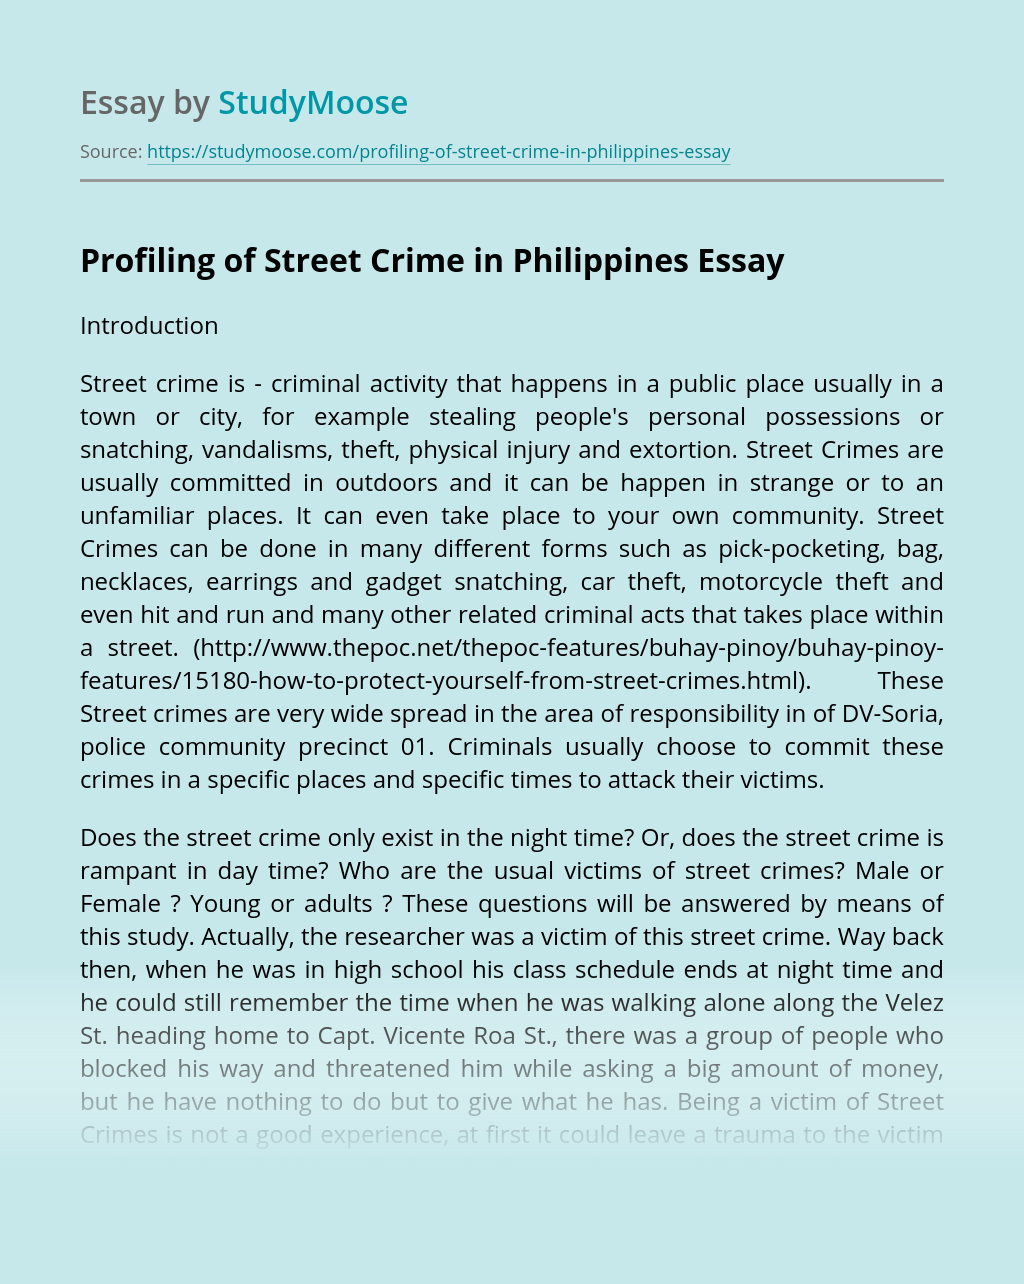 Profiling of Street Crime in Philippines